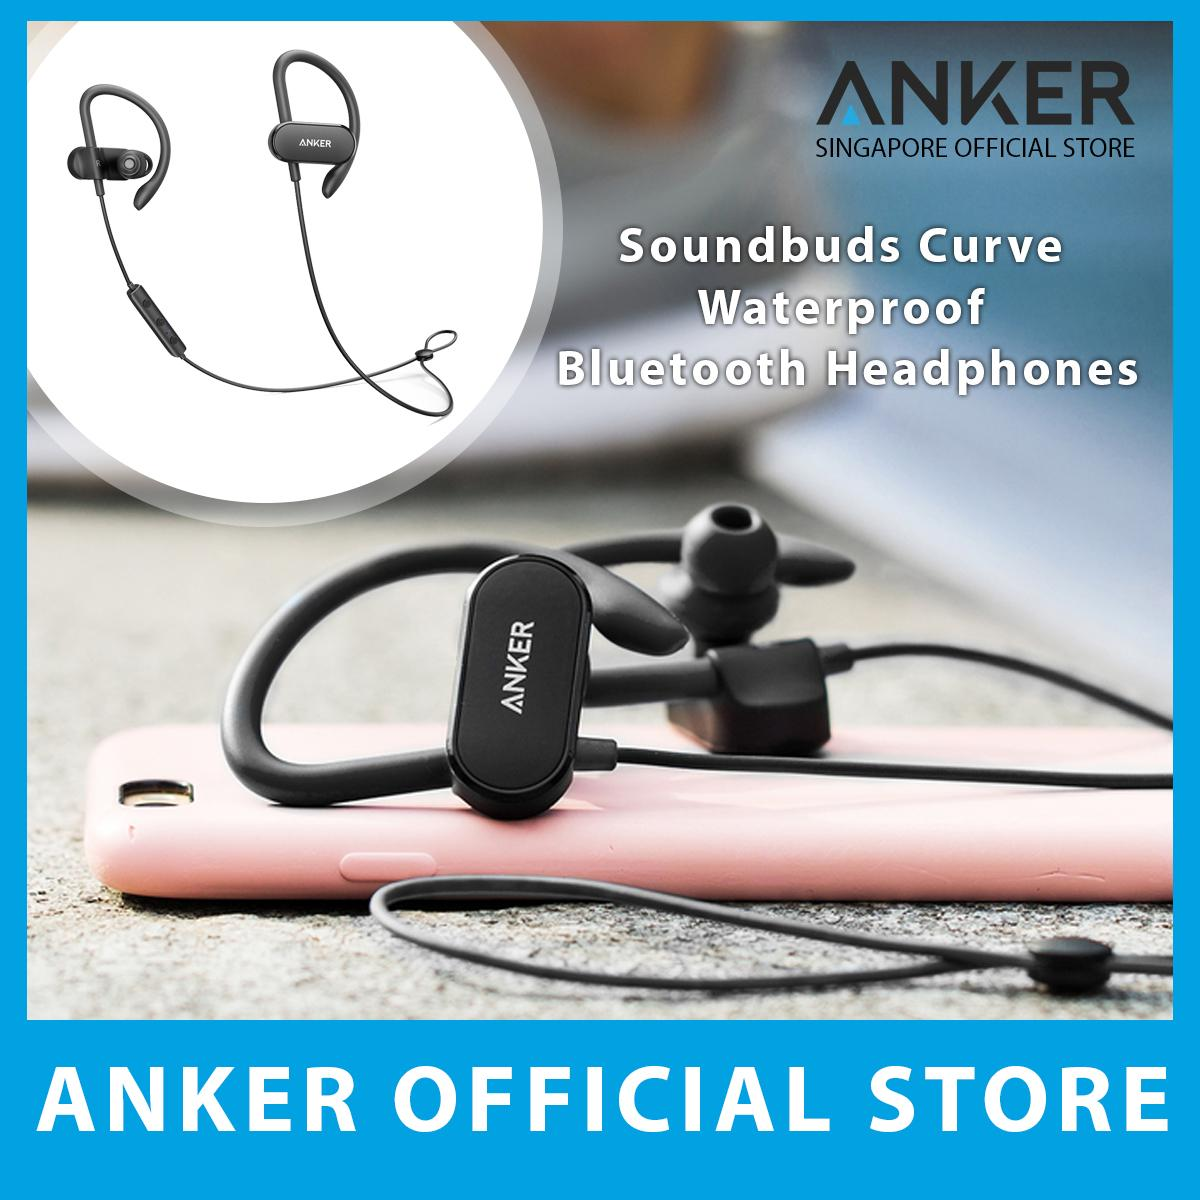 Anker Soundbuds Curve Waterproof Bluetooth Headphones Free Shipping